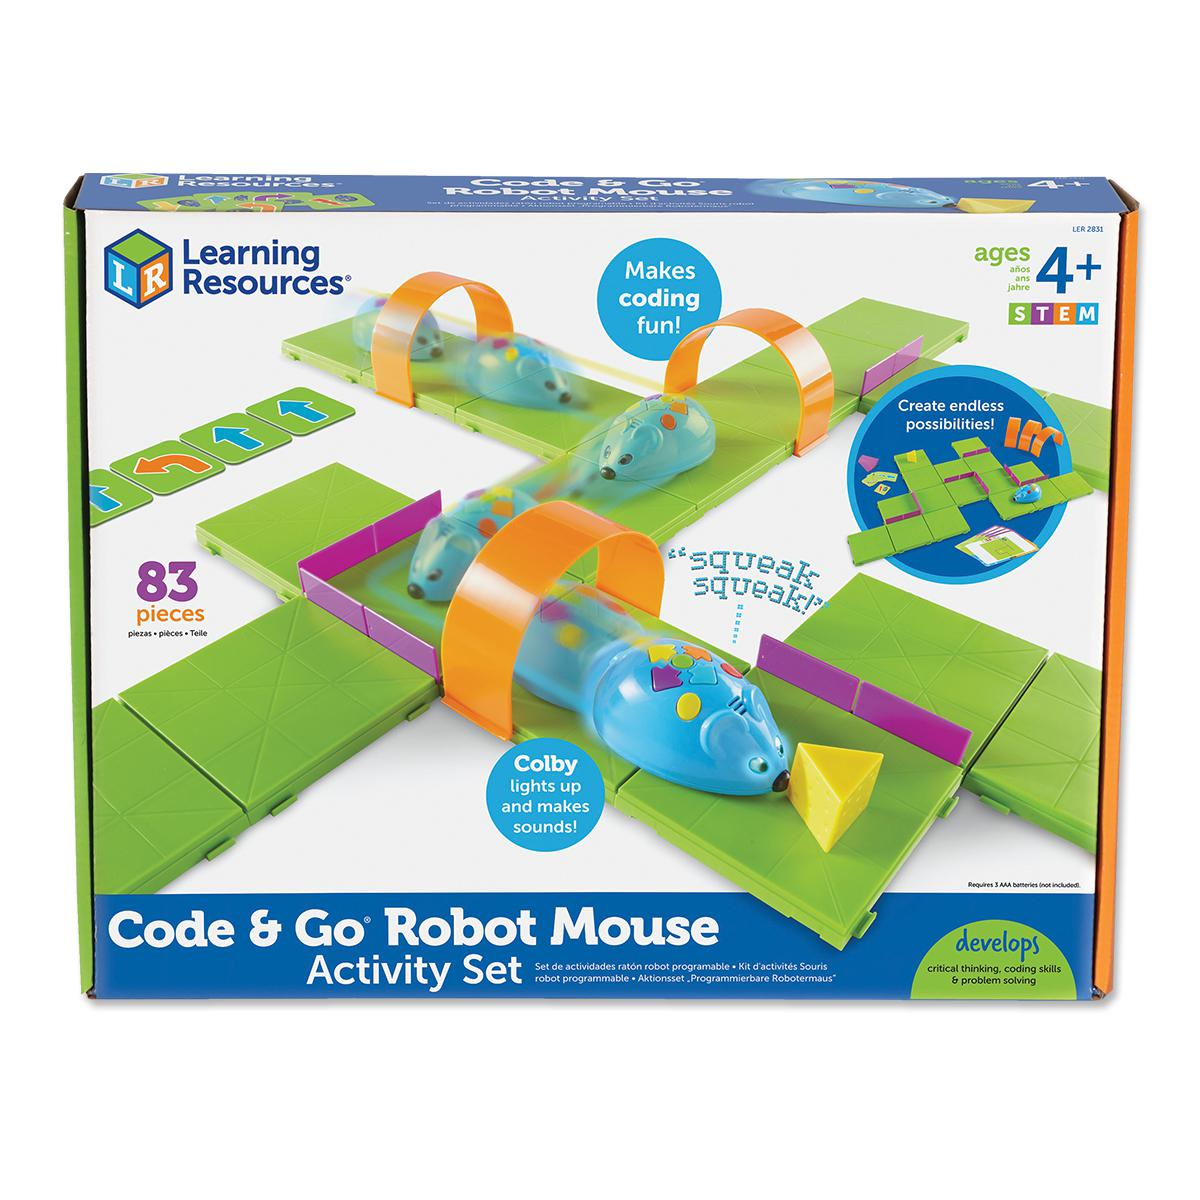 Code & Go: Robot Mouse Coding Activity Set